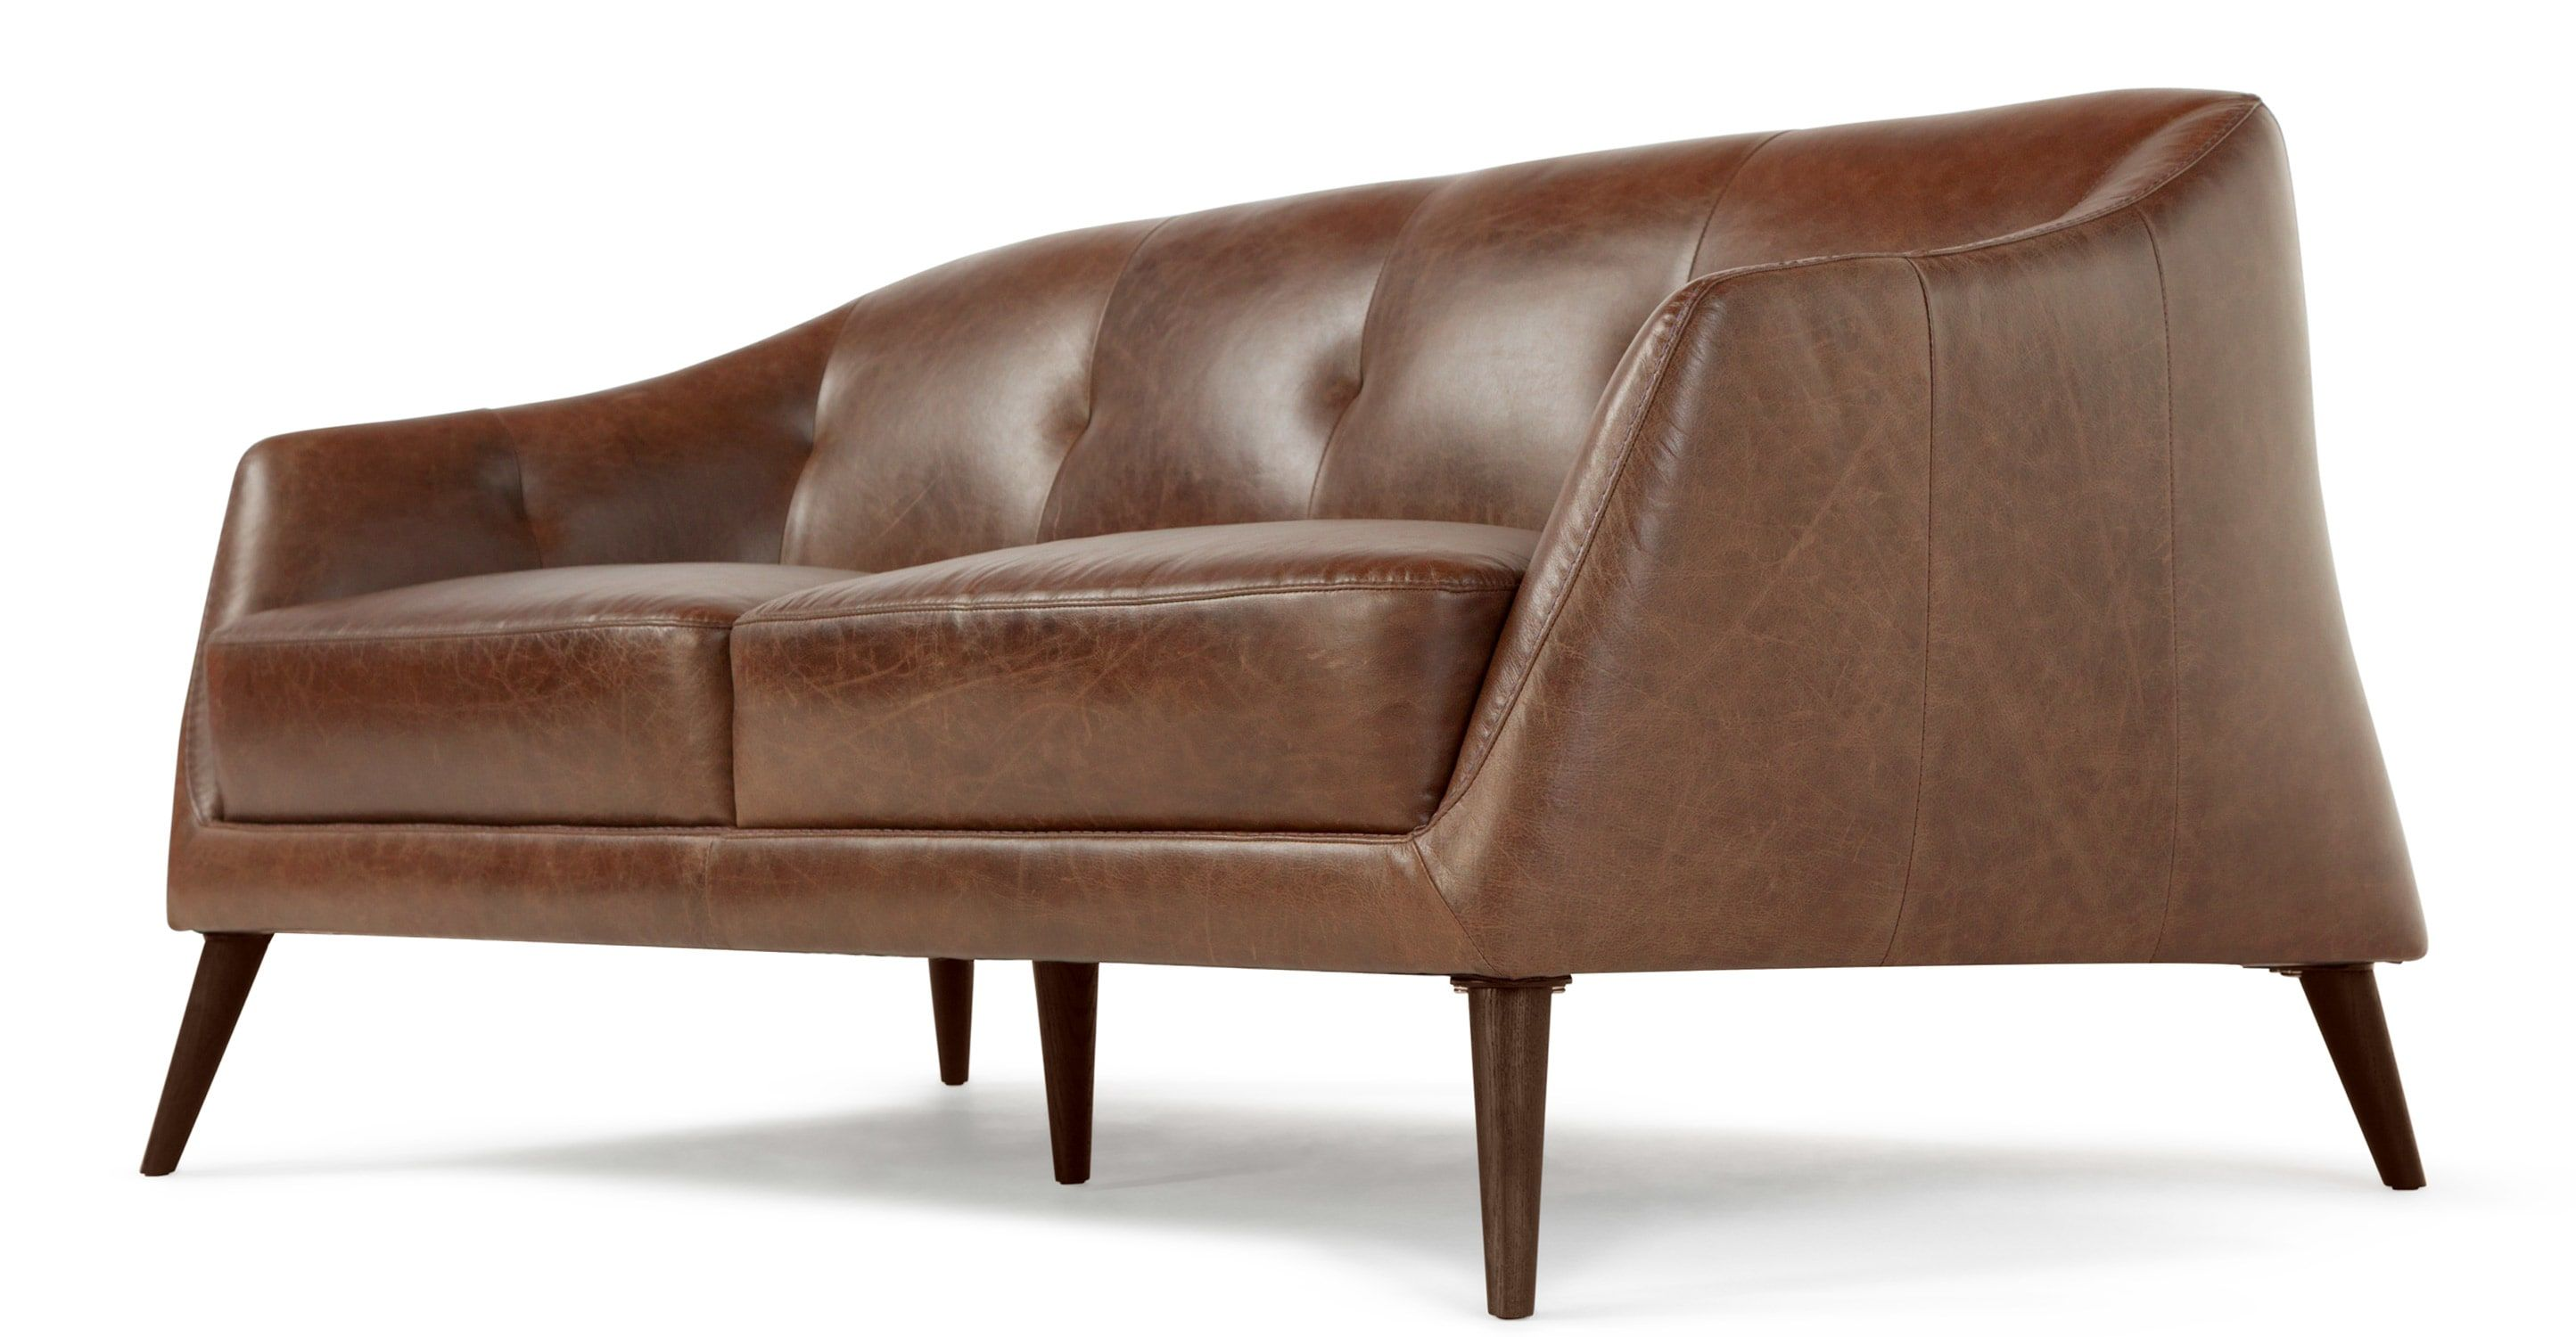 Nevada 2 Seater Sofa Antique Cognac Leather Seater Sofa 2 Seater Sofa Leather Furniture